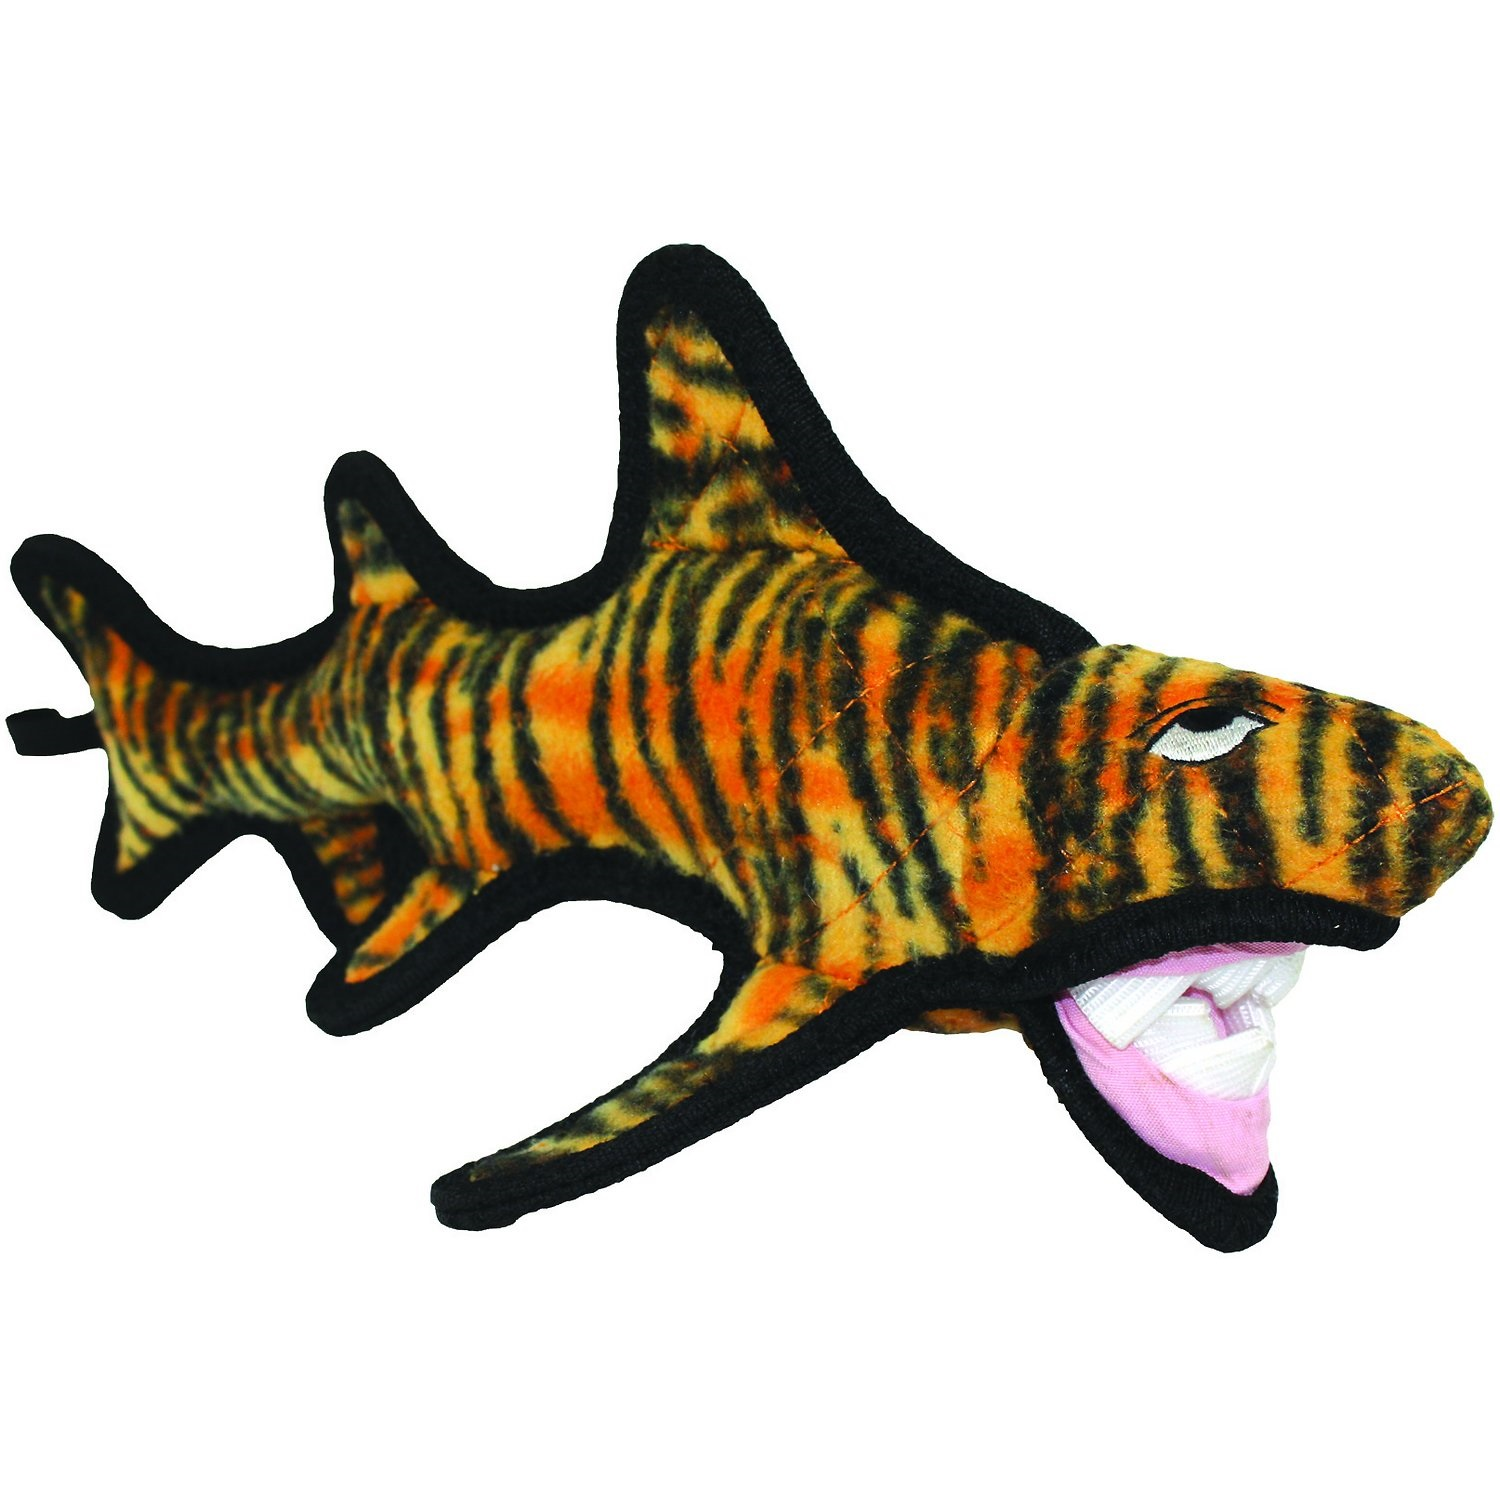 Tuffy's Ocean Creature Tiger Shark Dog Toy